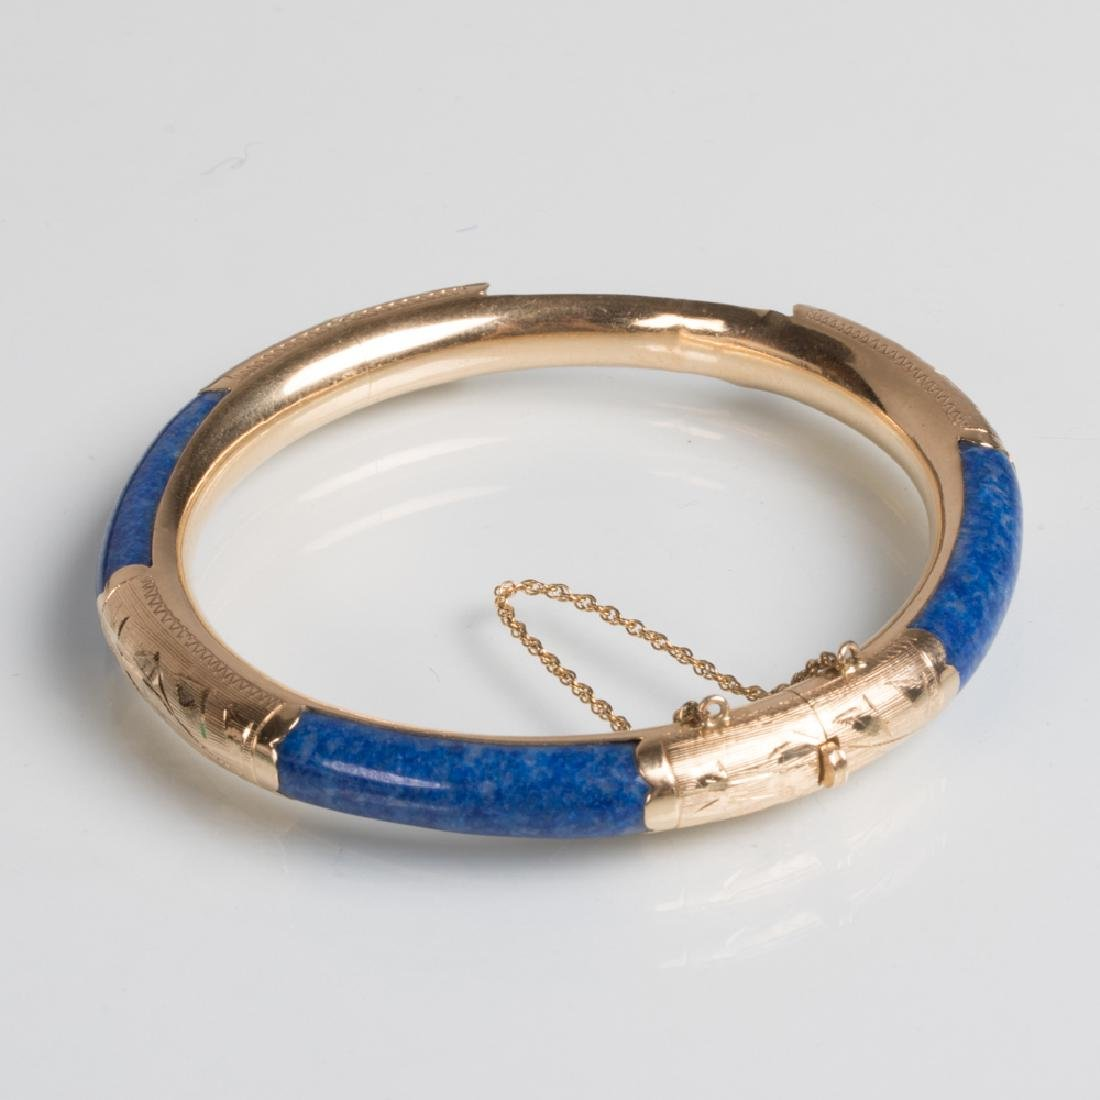 A 14kt. Yellow Gold and Lapis Bangle Bracelet.